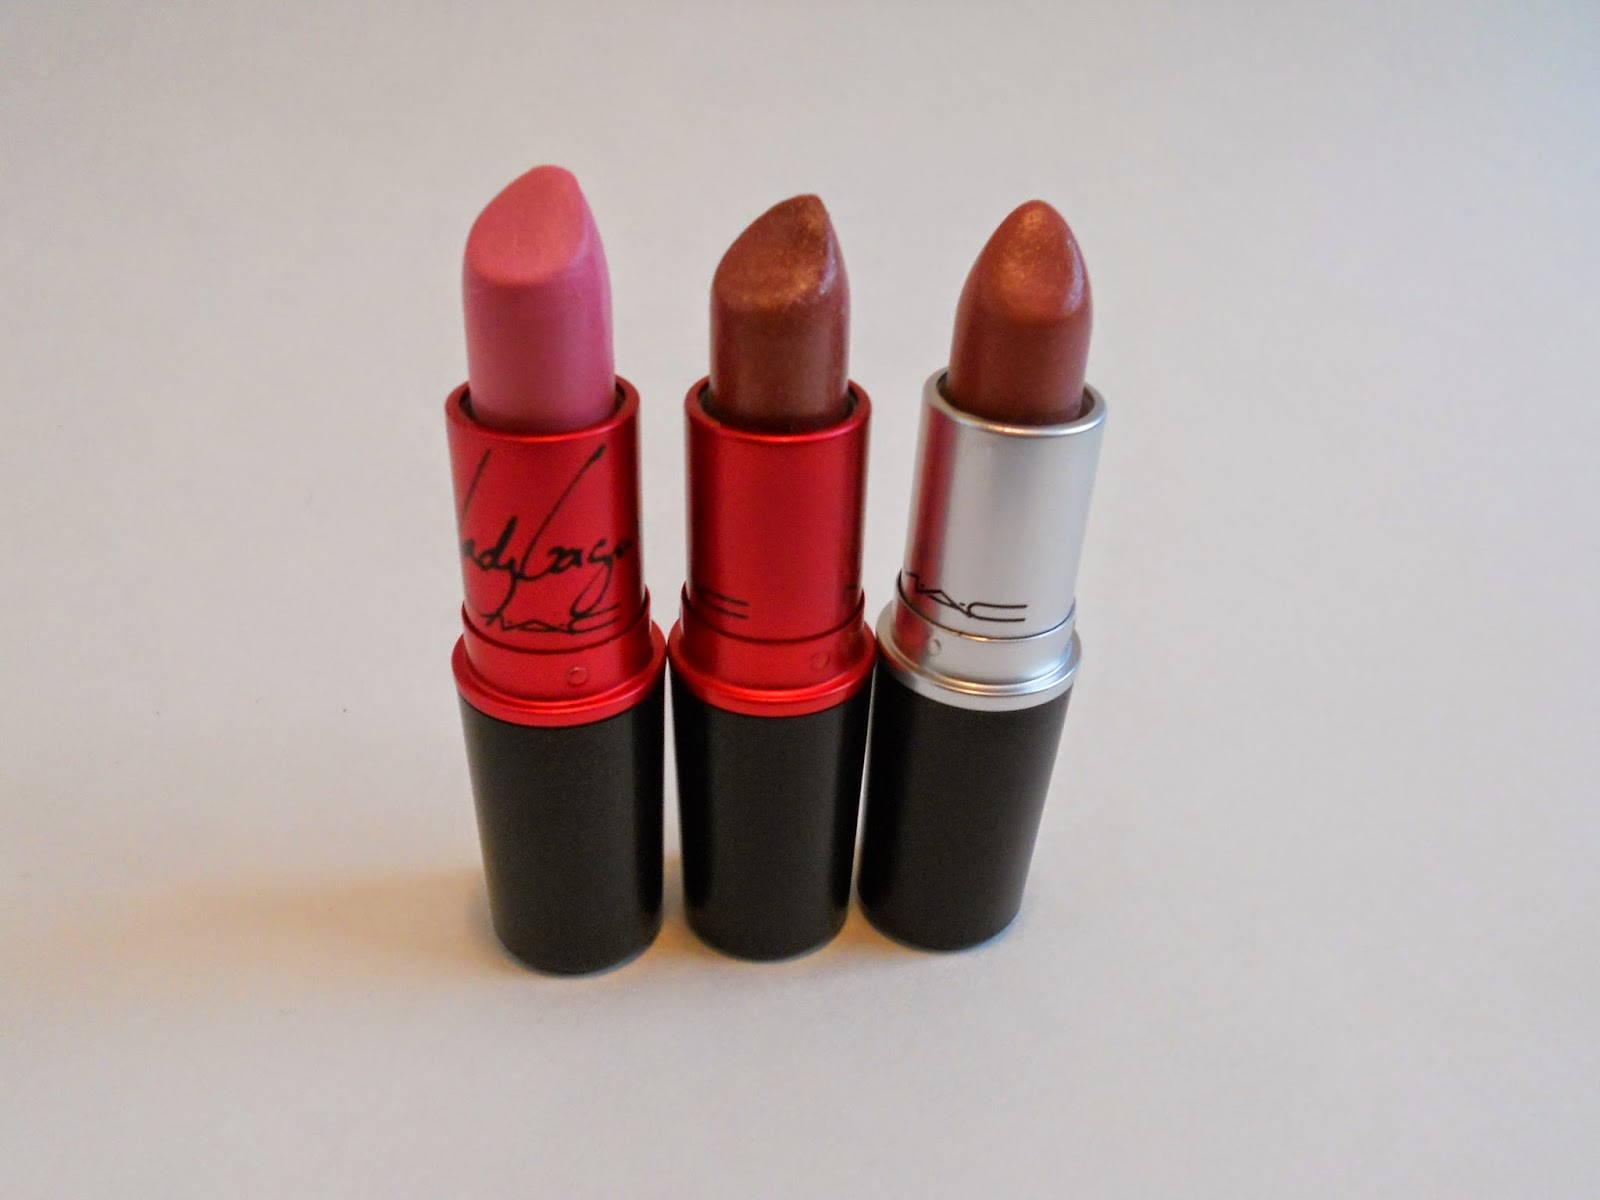 Viva Glam Gaga, Viva Glam V and Patisserie